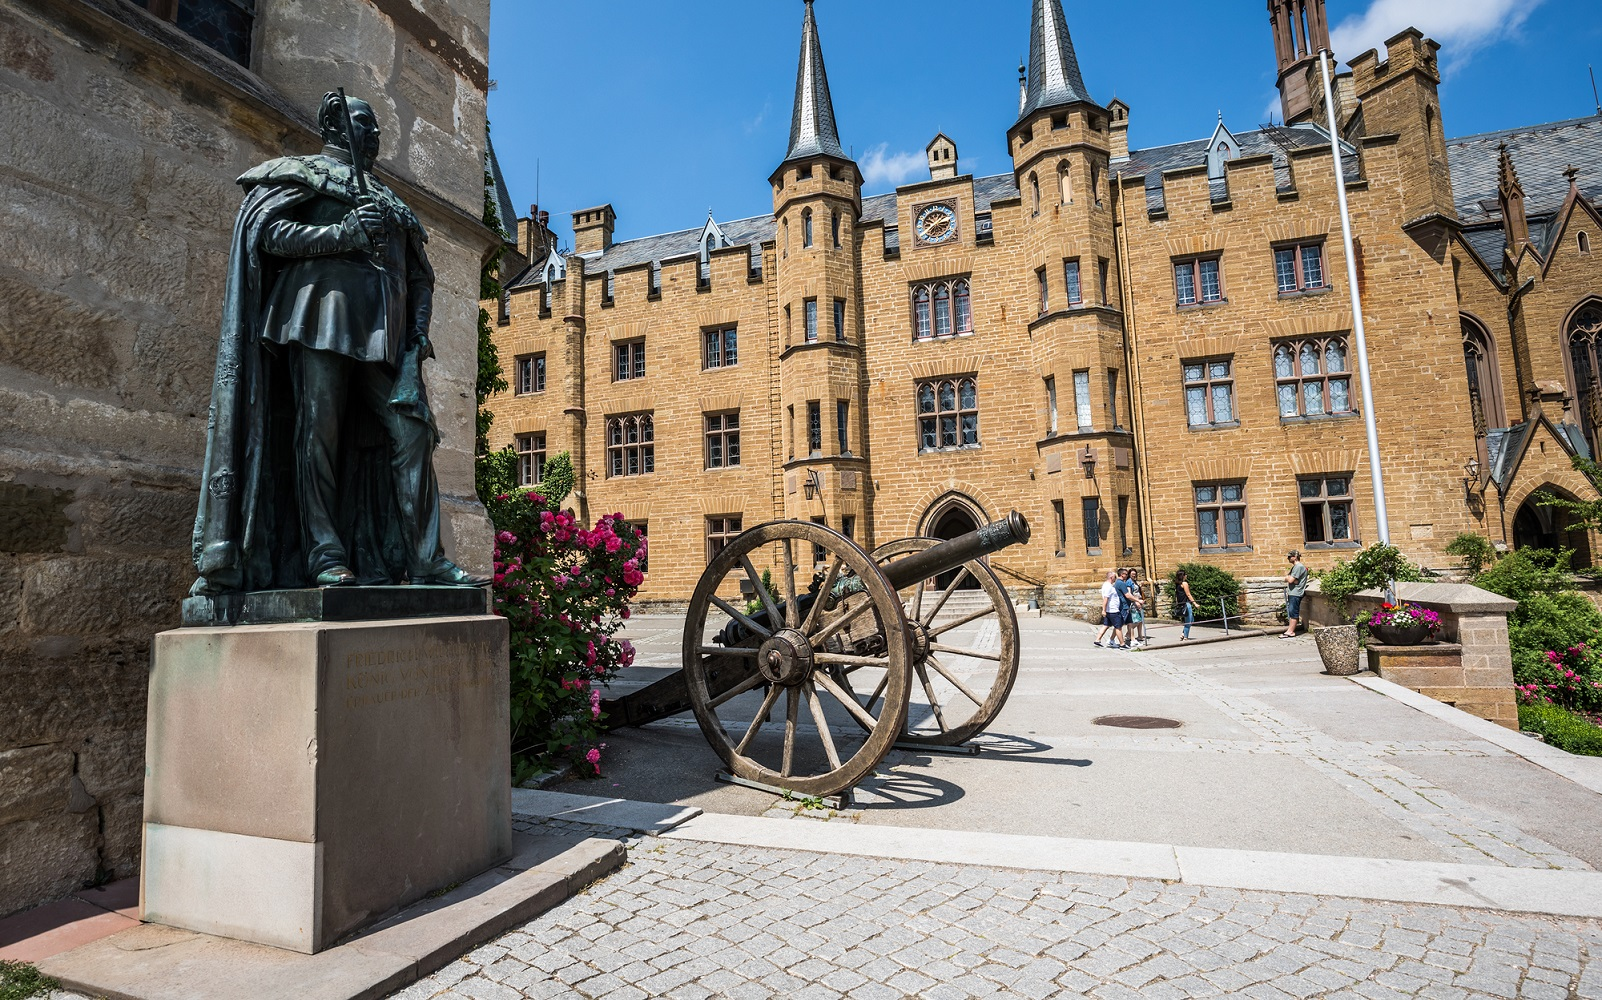 Historical places to visit in Germany: Hohenzollern Castle